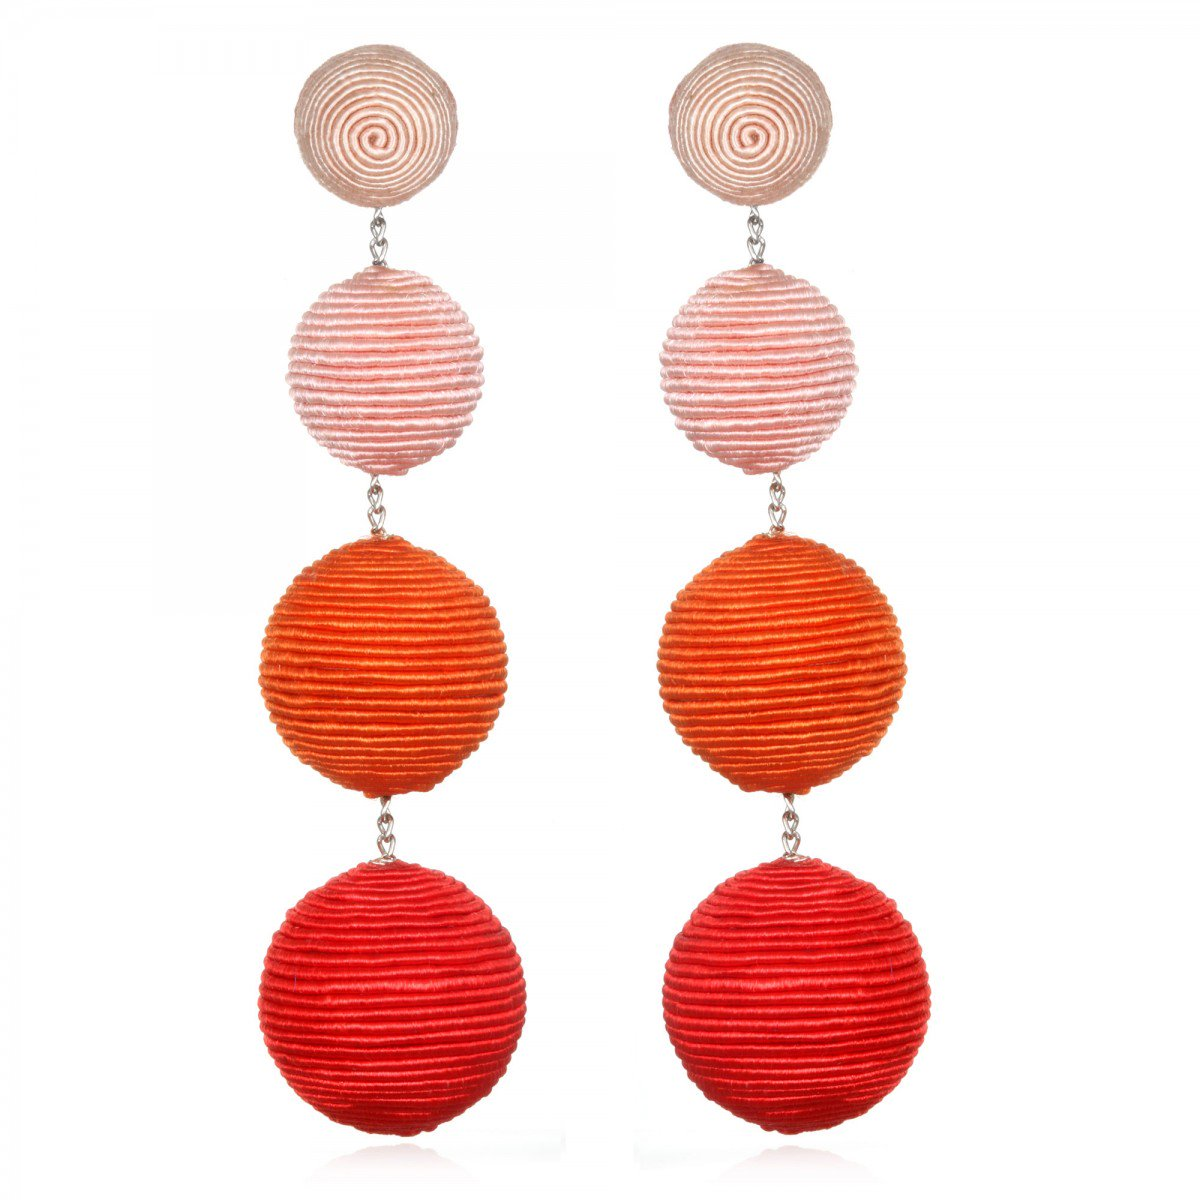 Coral Ombre Gumball Earrings by SUZANNA DAI